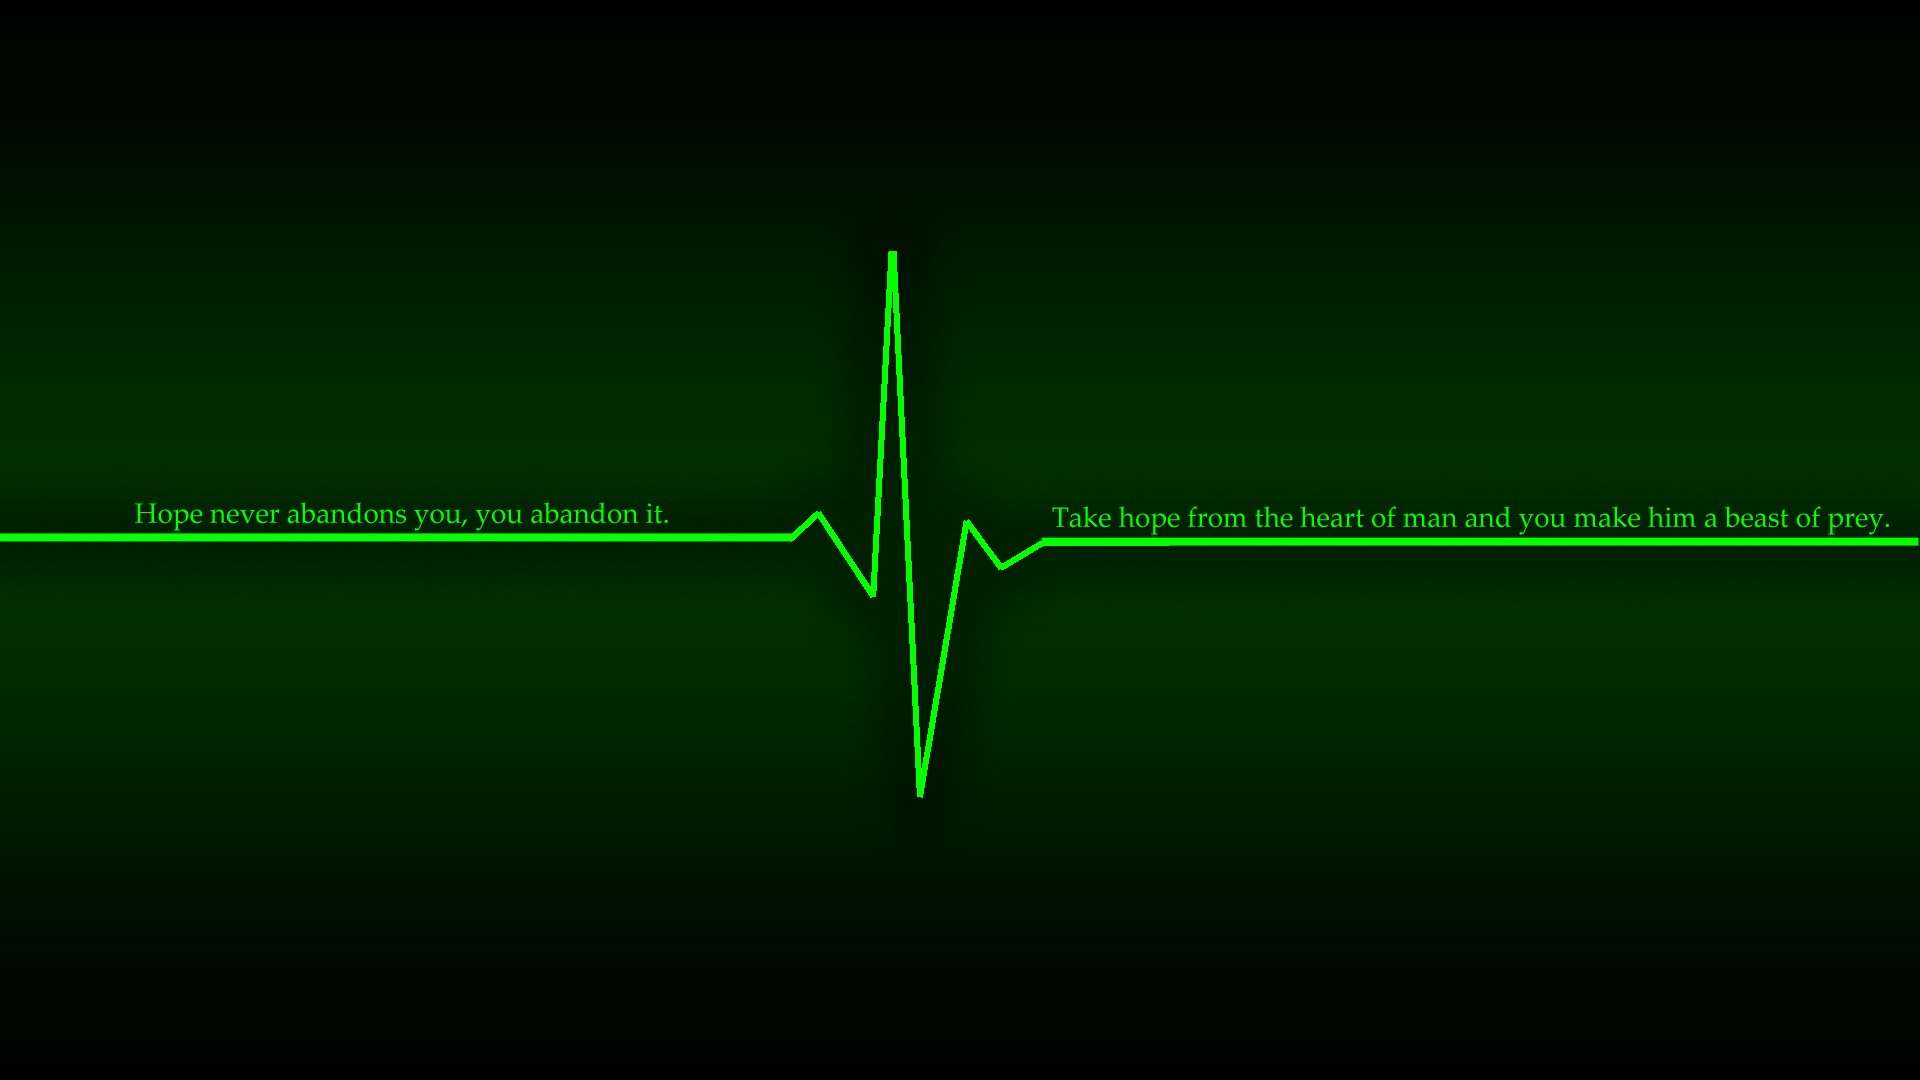 Heart Beat wallpaper893145 1364